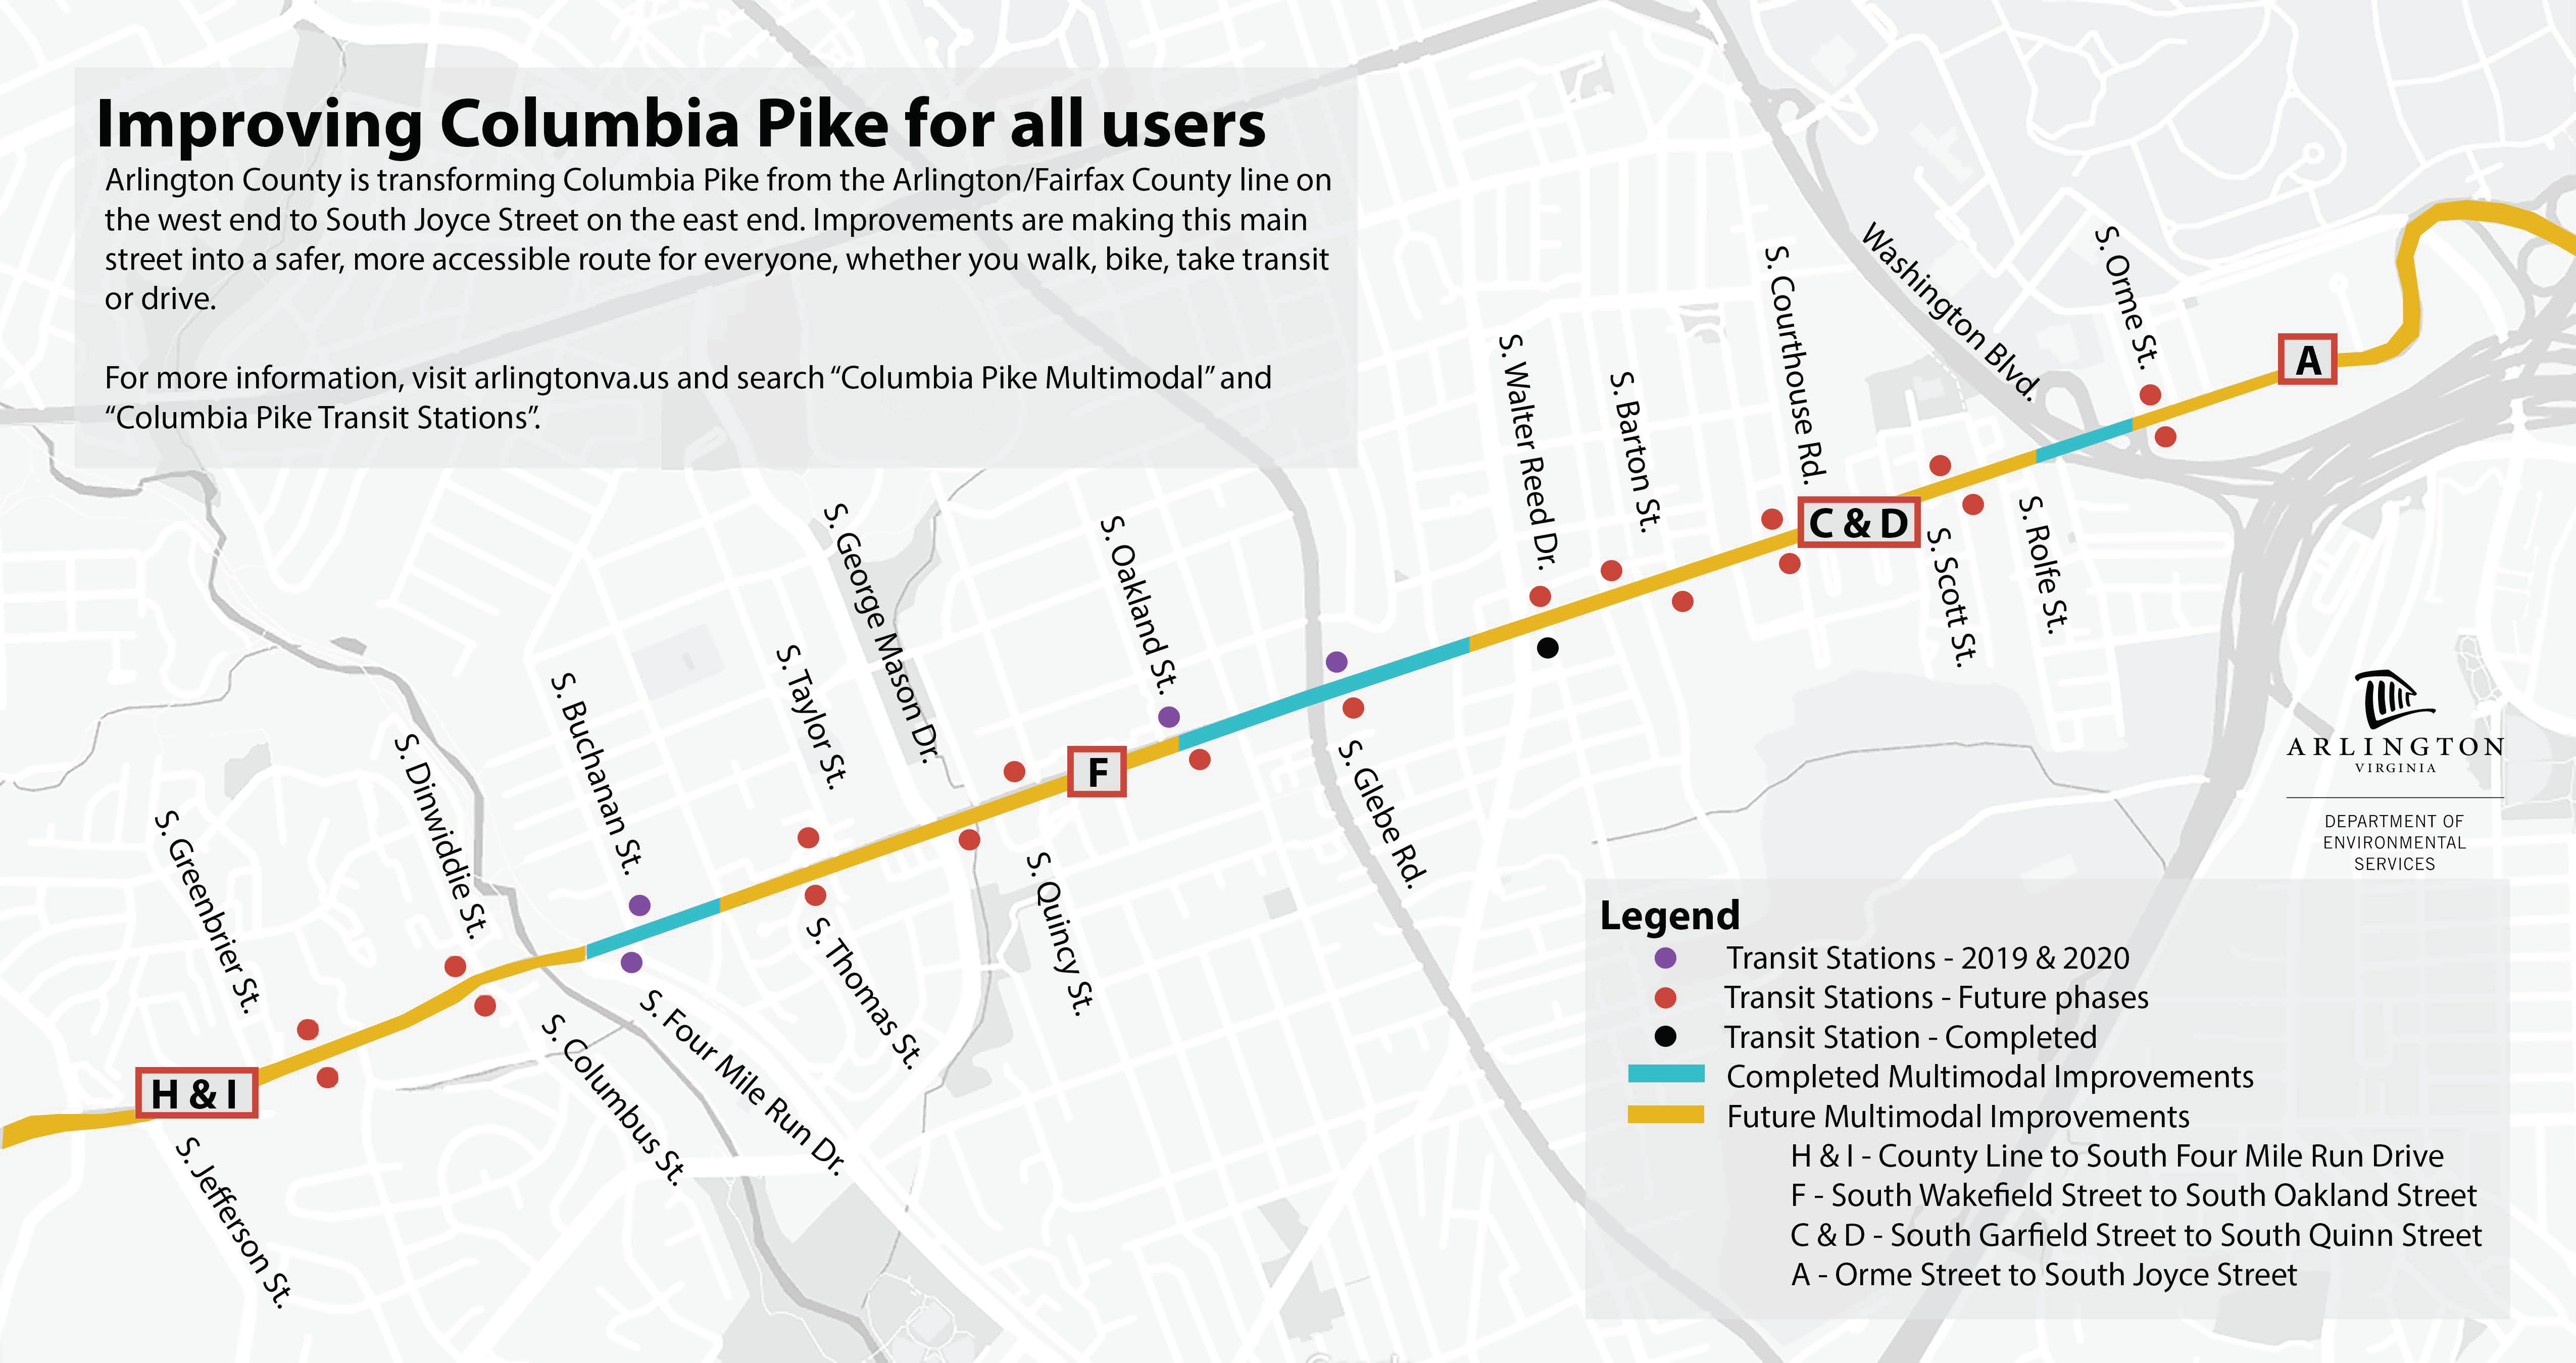 Enhanced Transit Stations Support the Pike Premium Transit Network (Part IV)